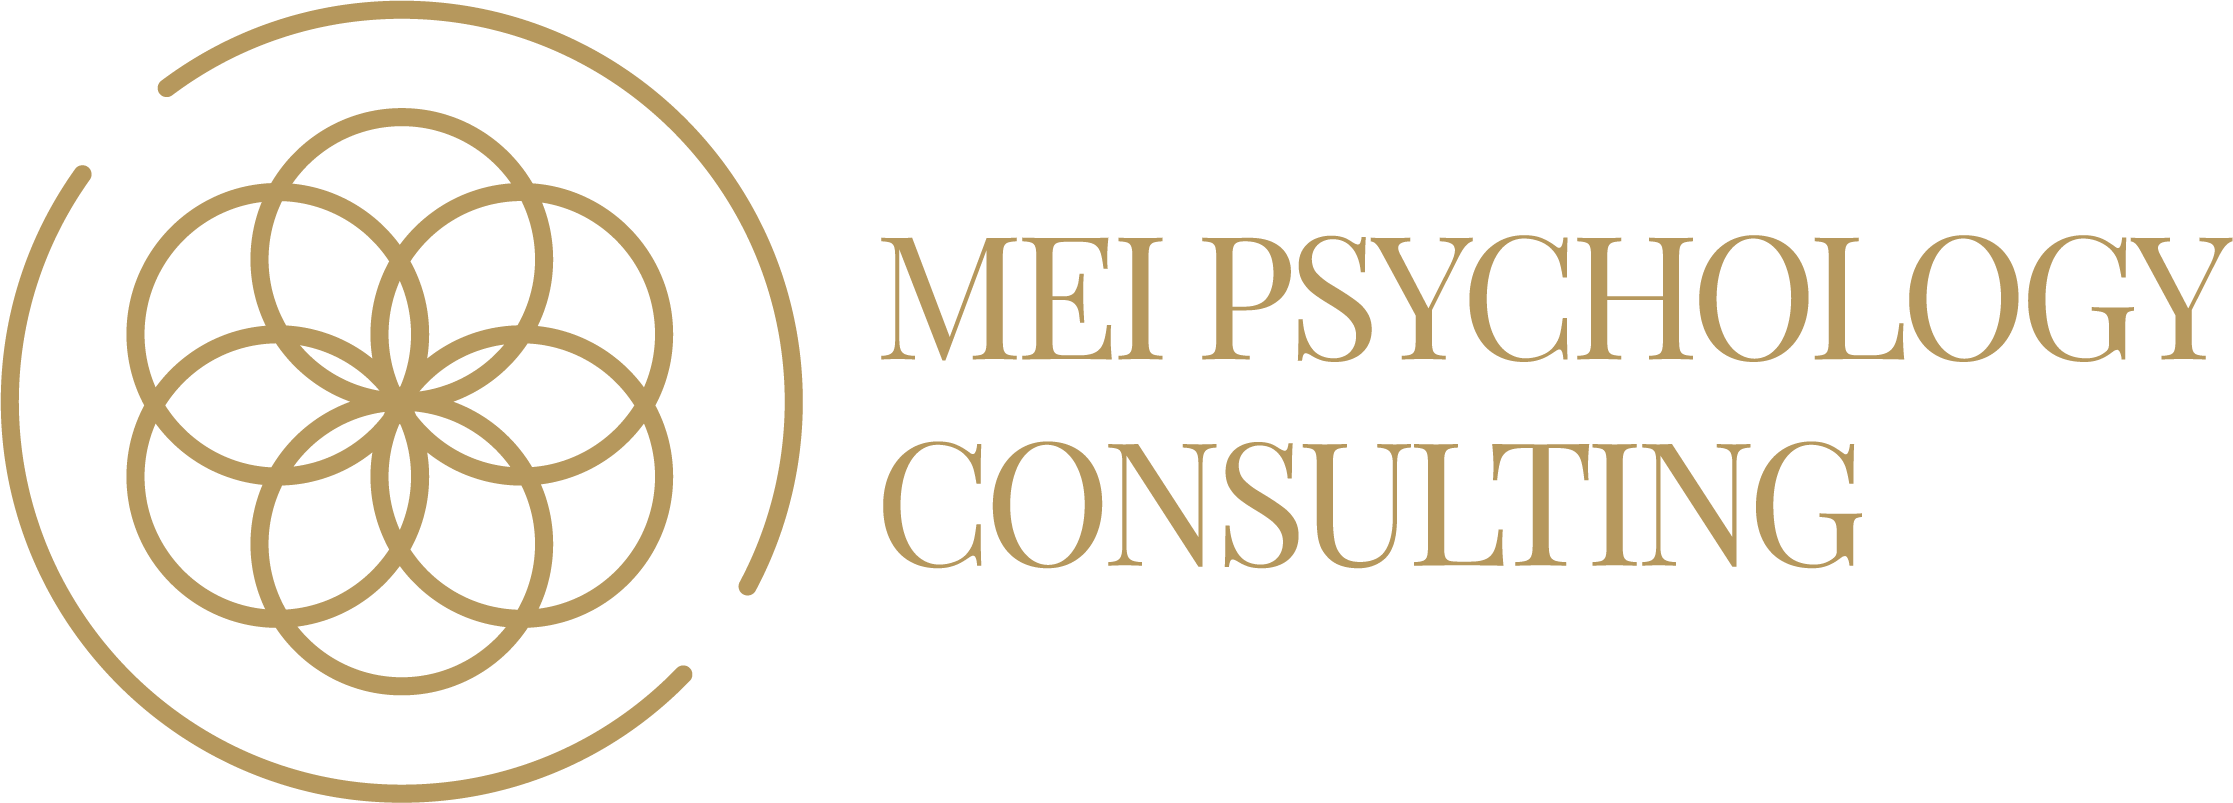 MEI Psychology Consulting